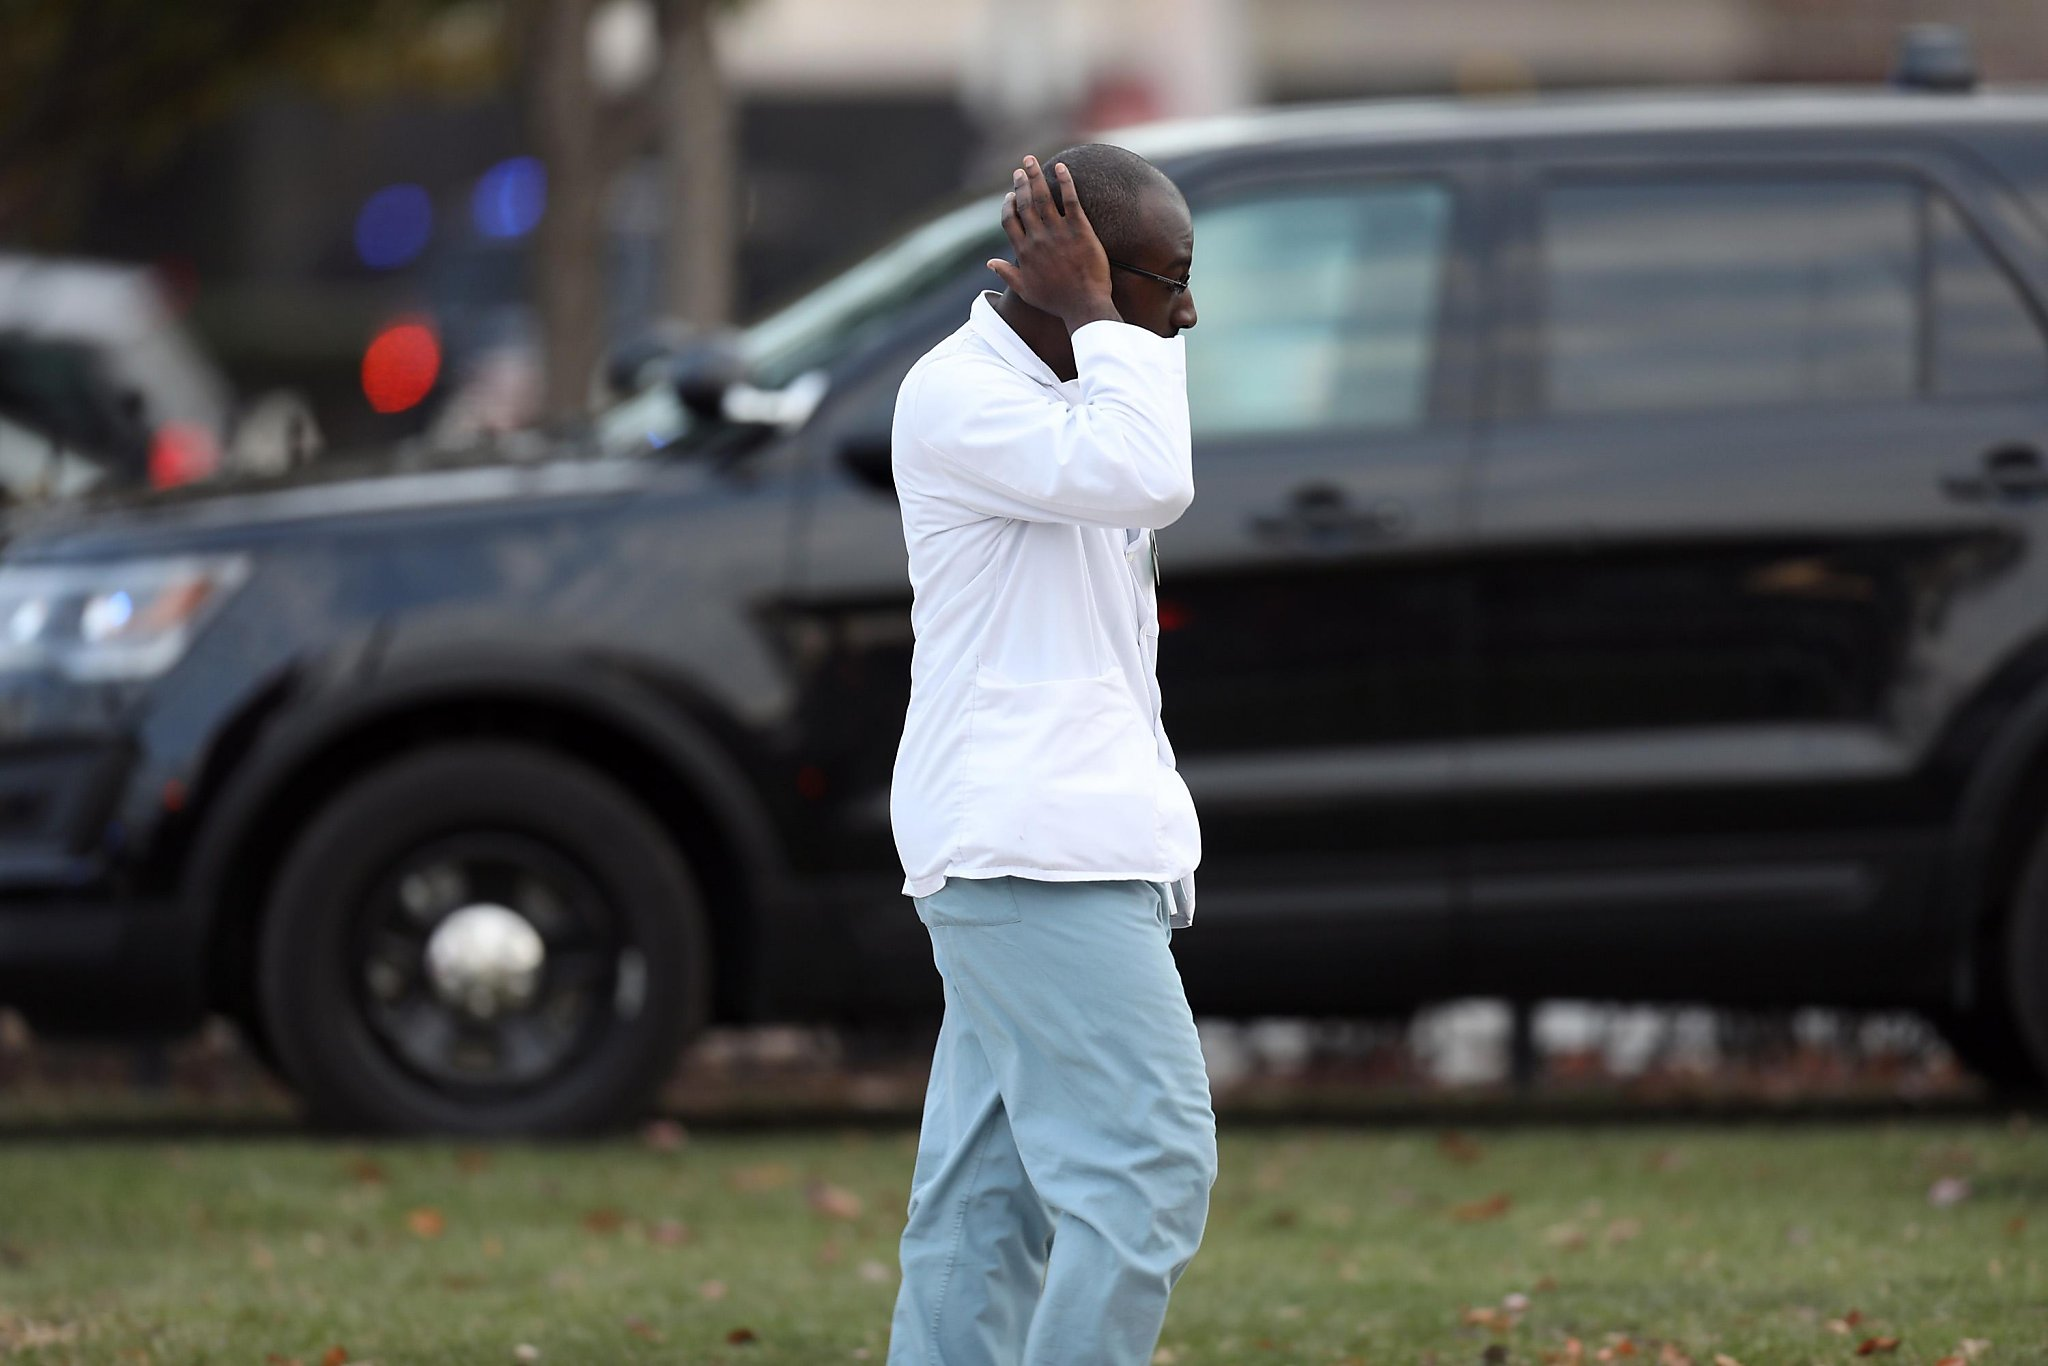 Gunman Opens Fire At Chicago Hospital Wounds At Least 4